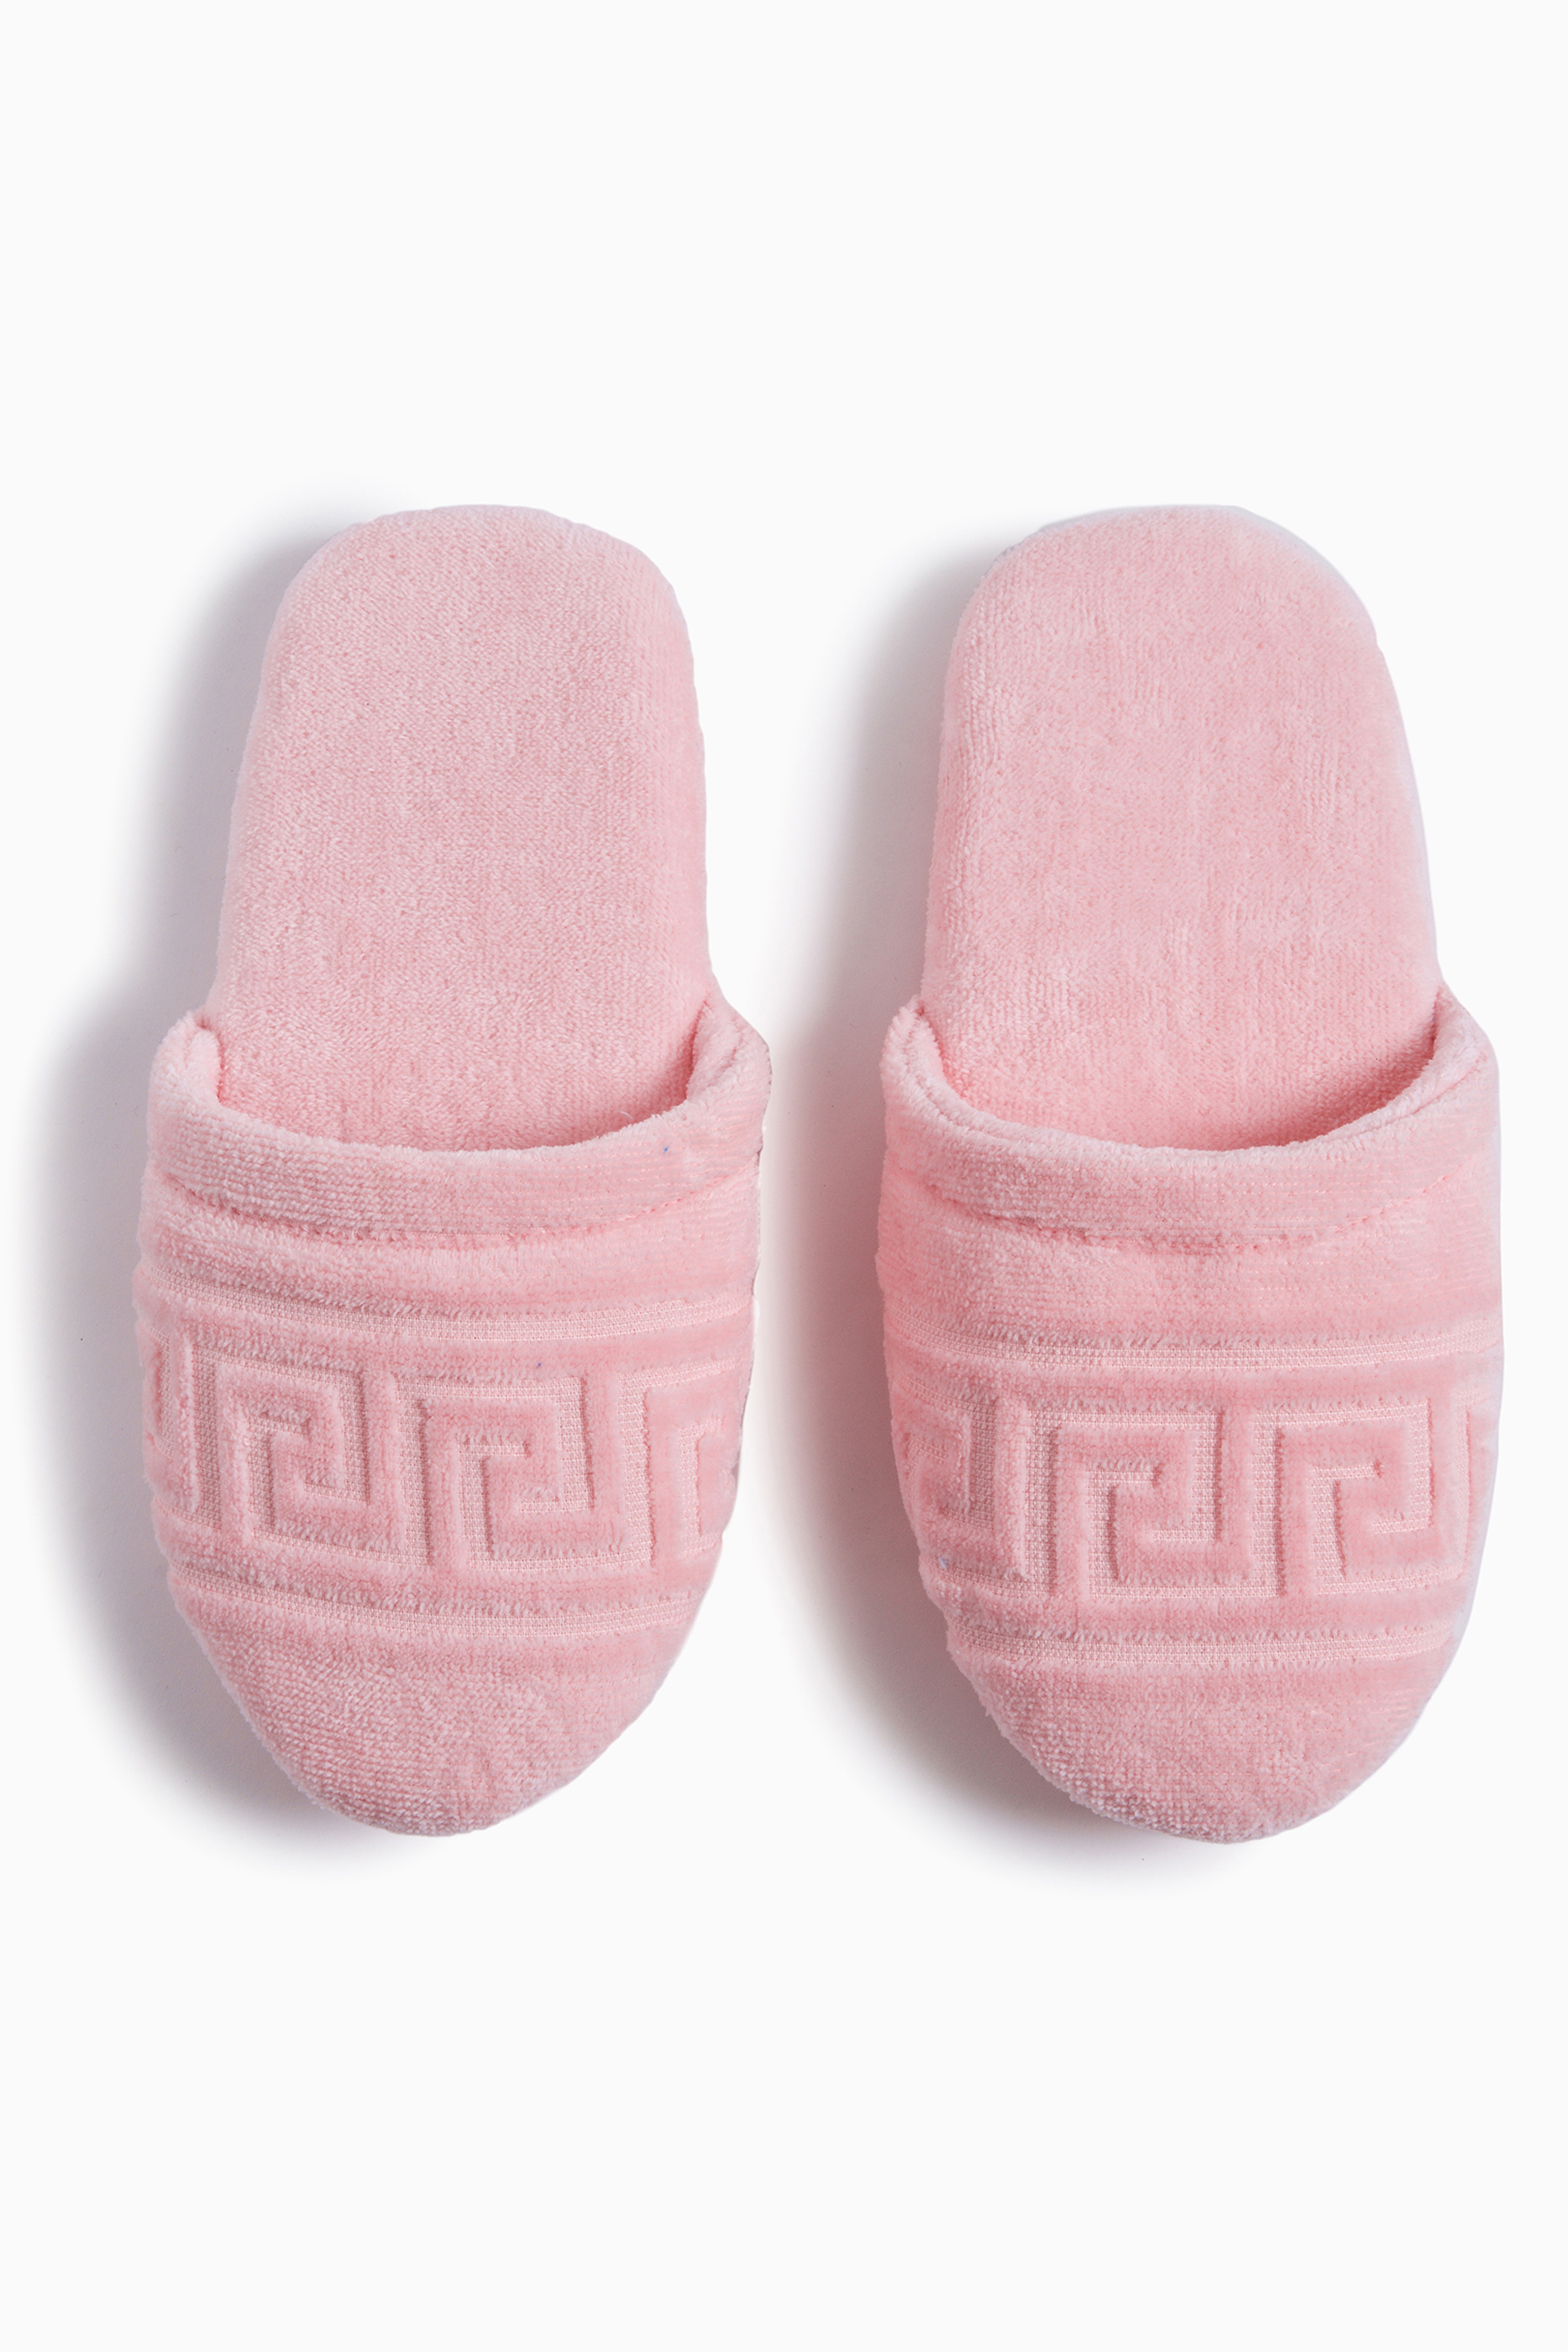 versace slippers pink